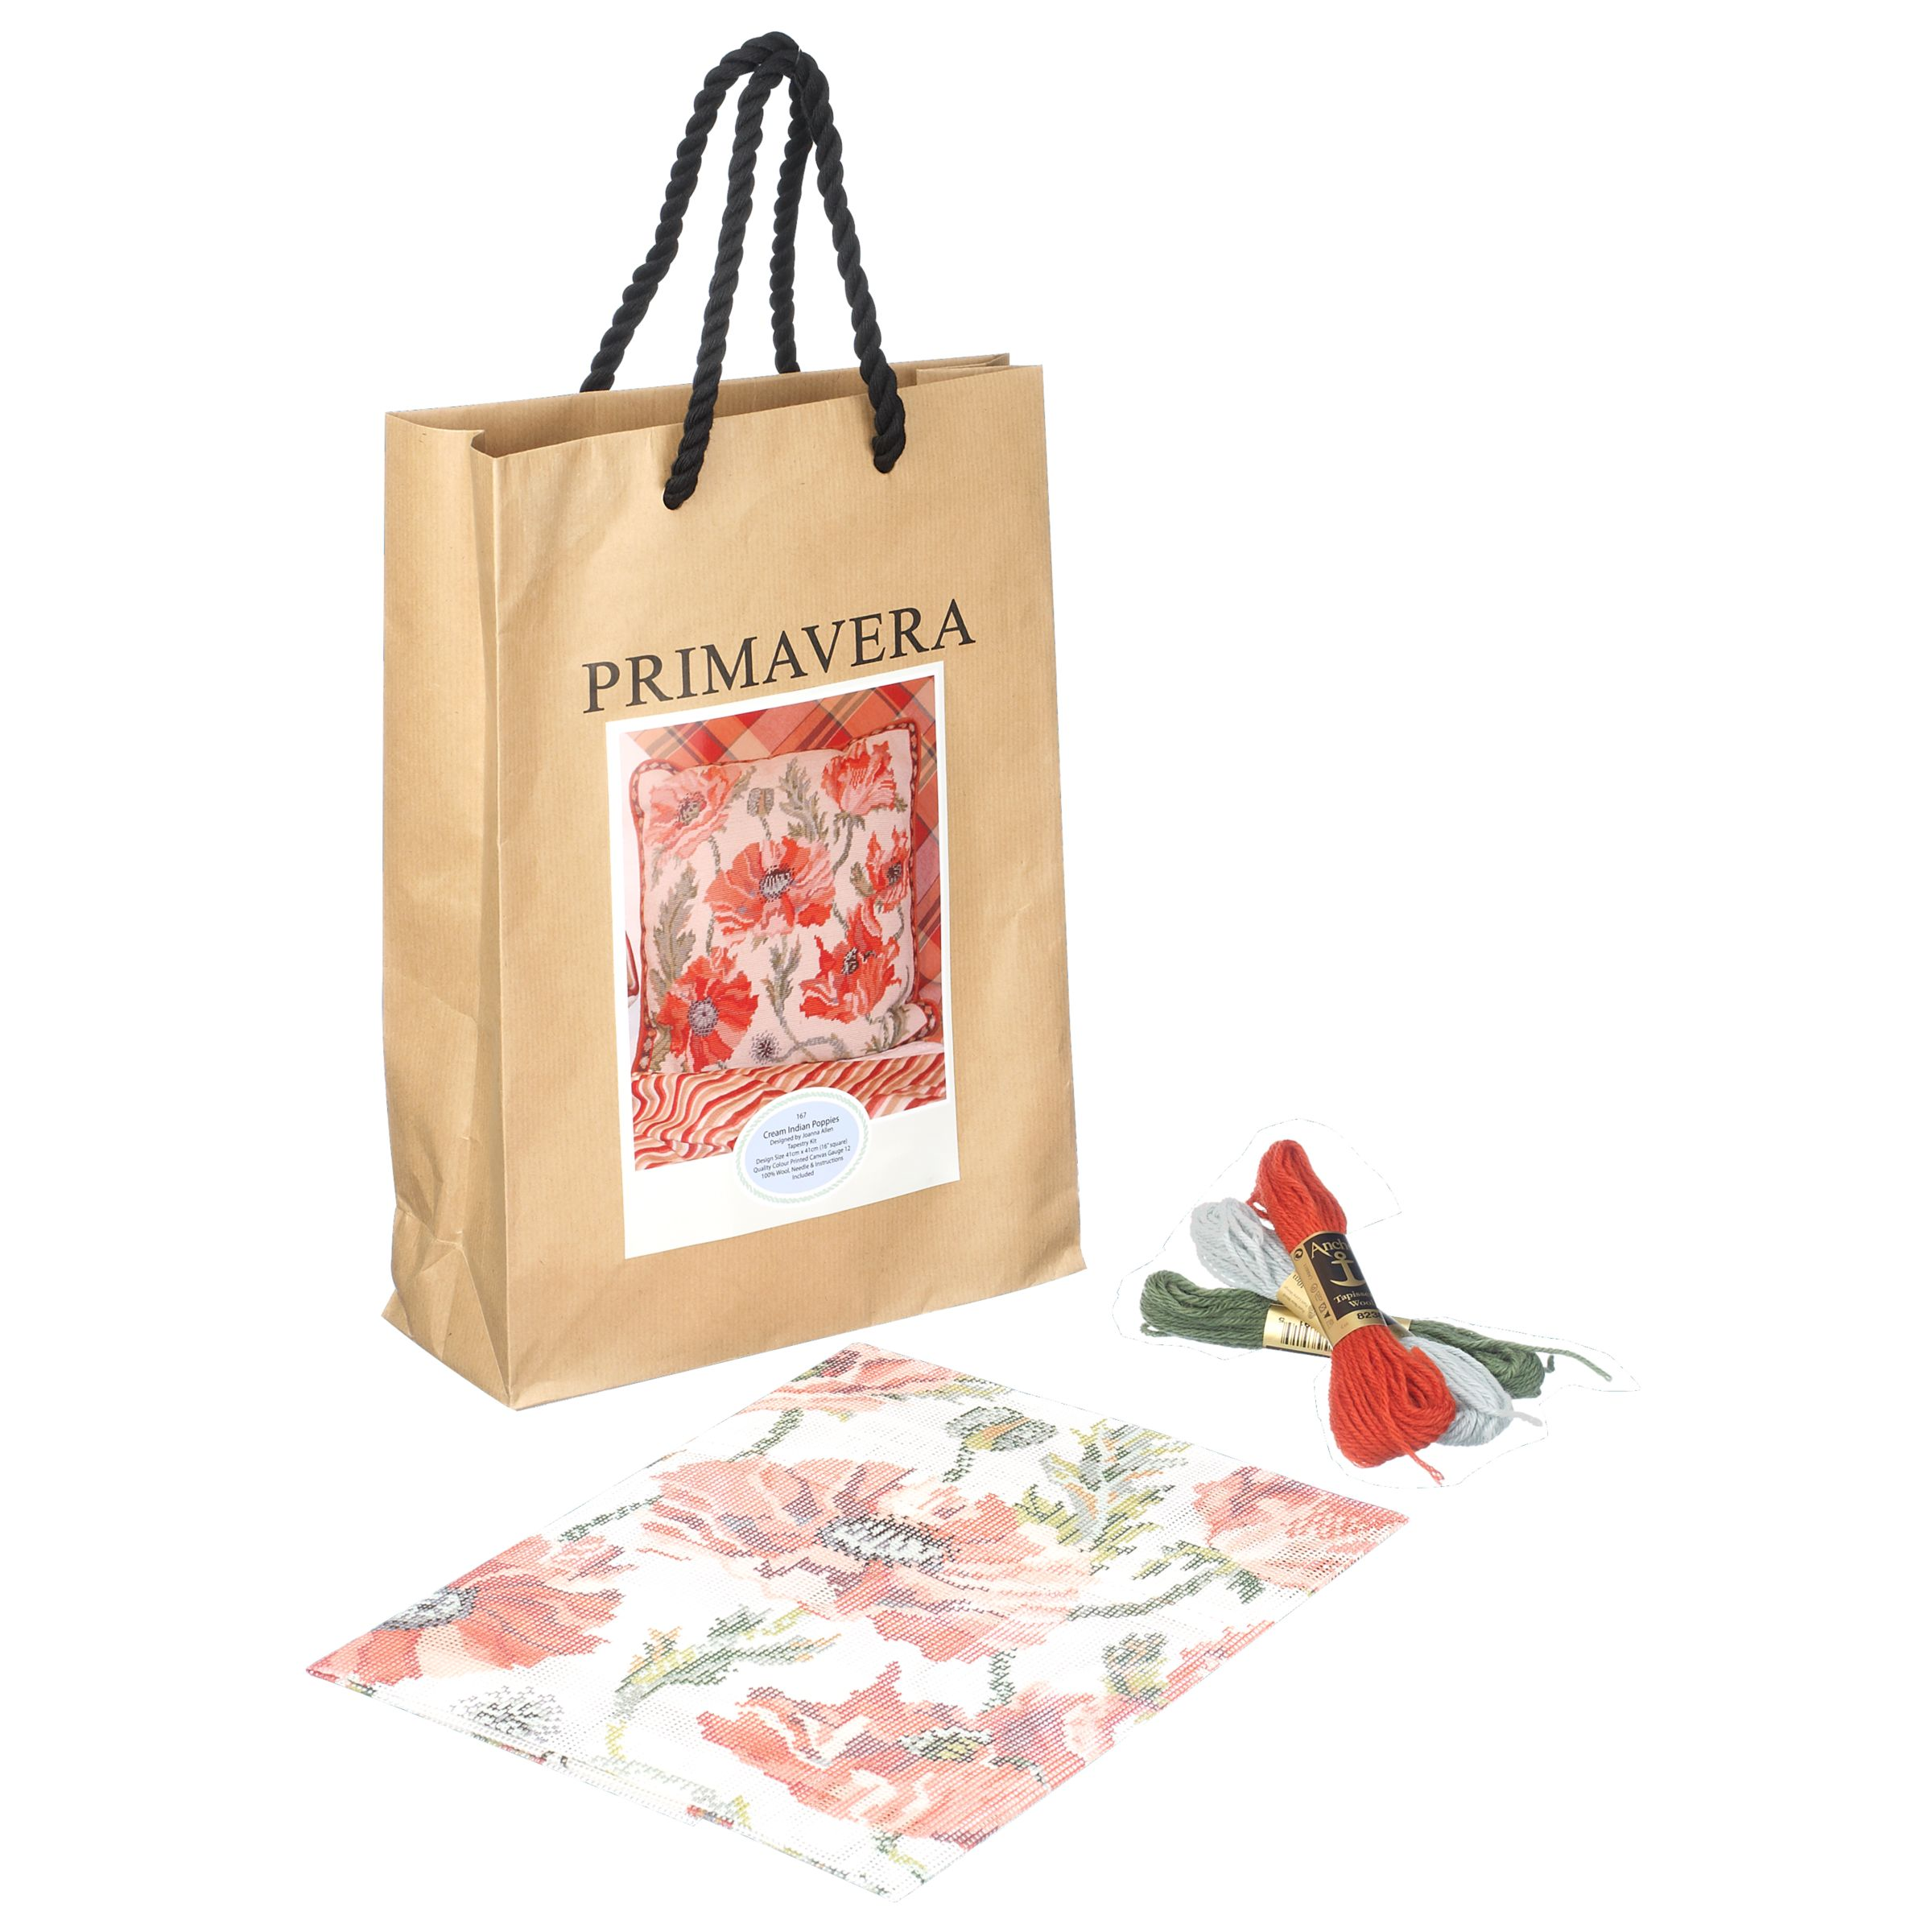 Primavera Cream Indian Poppies Cushion Tapestry Kit